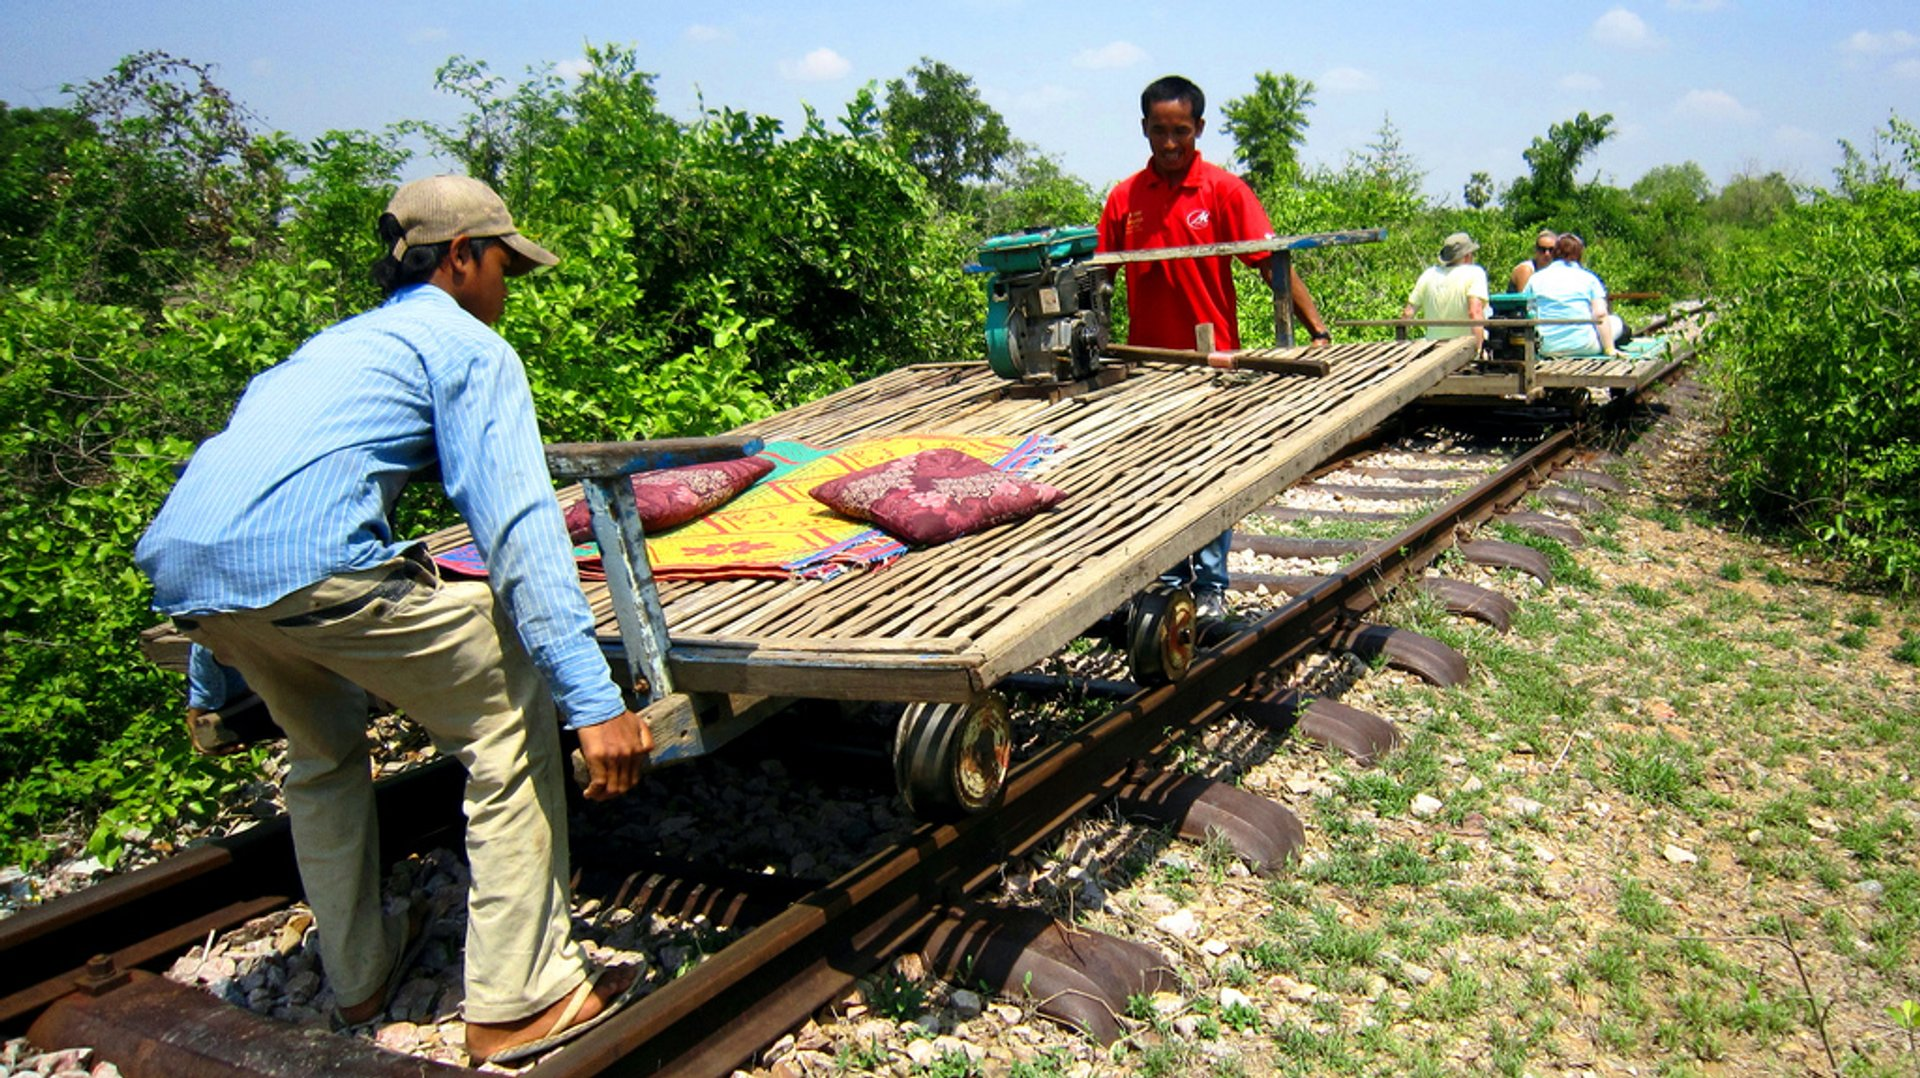 Bamboo Train or Norry in Cambodia 2019 - Best Time